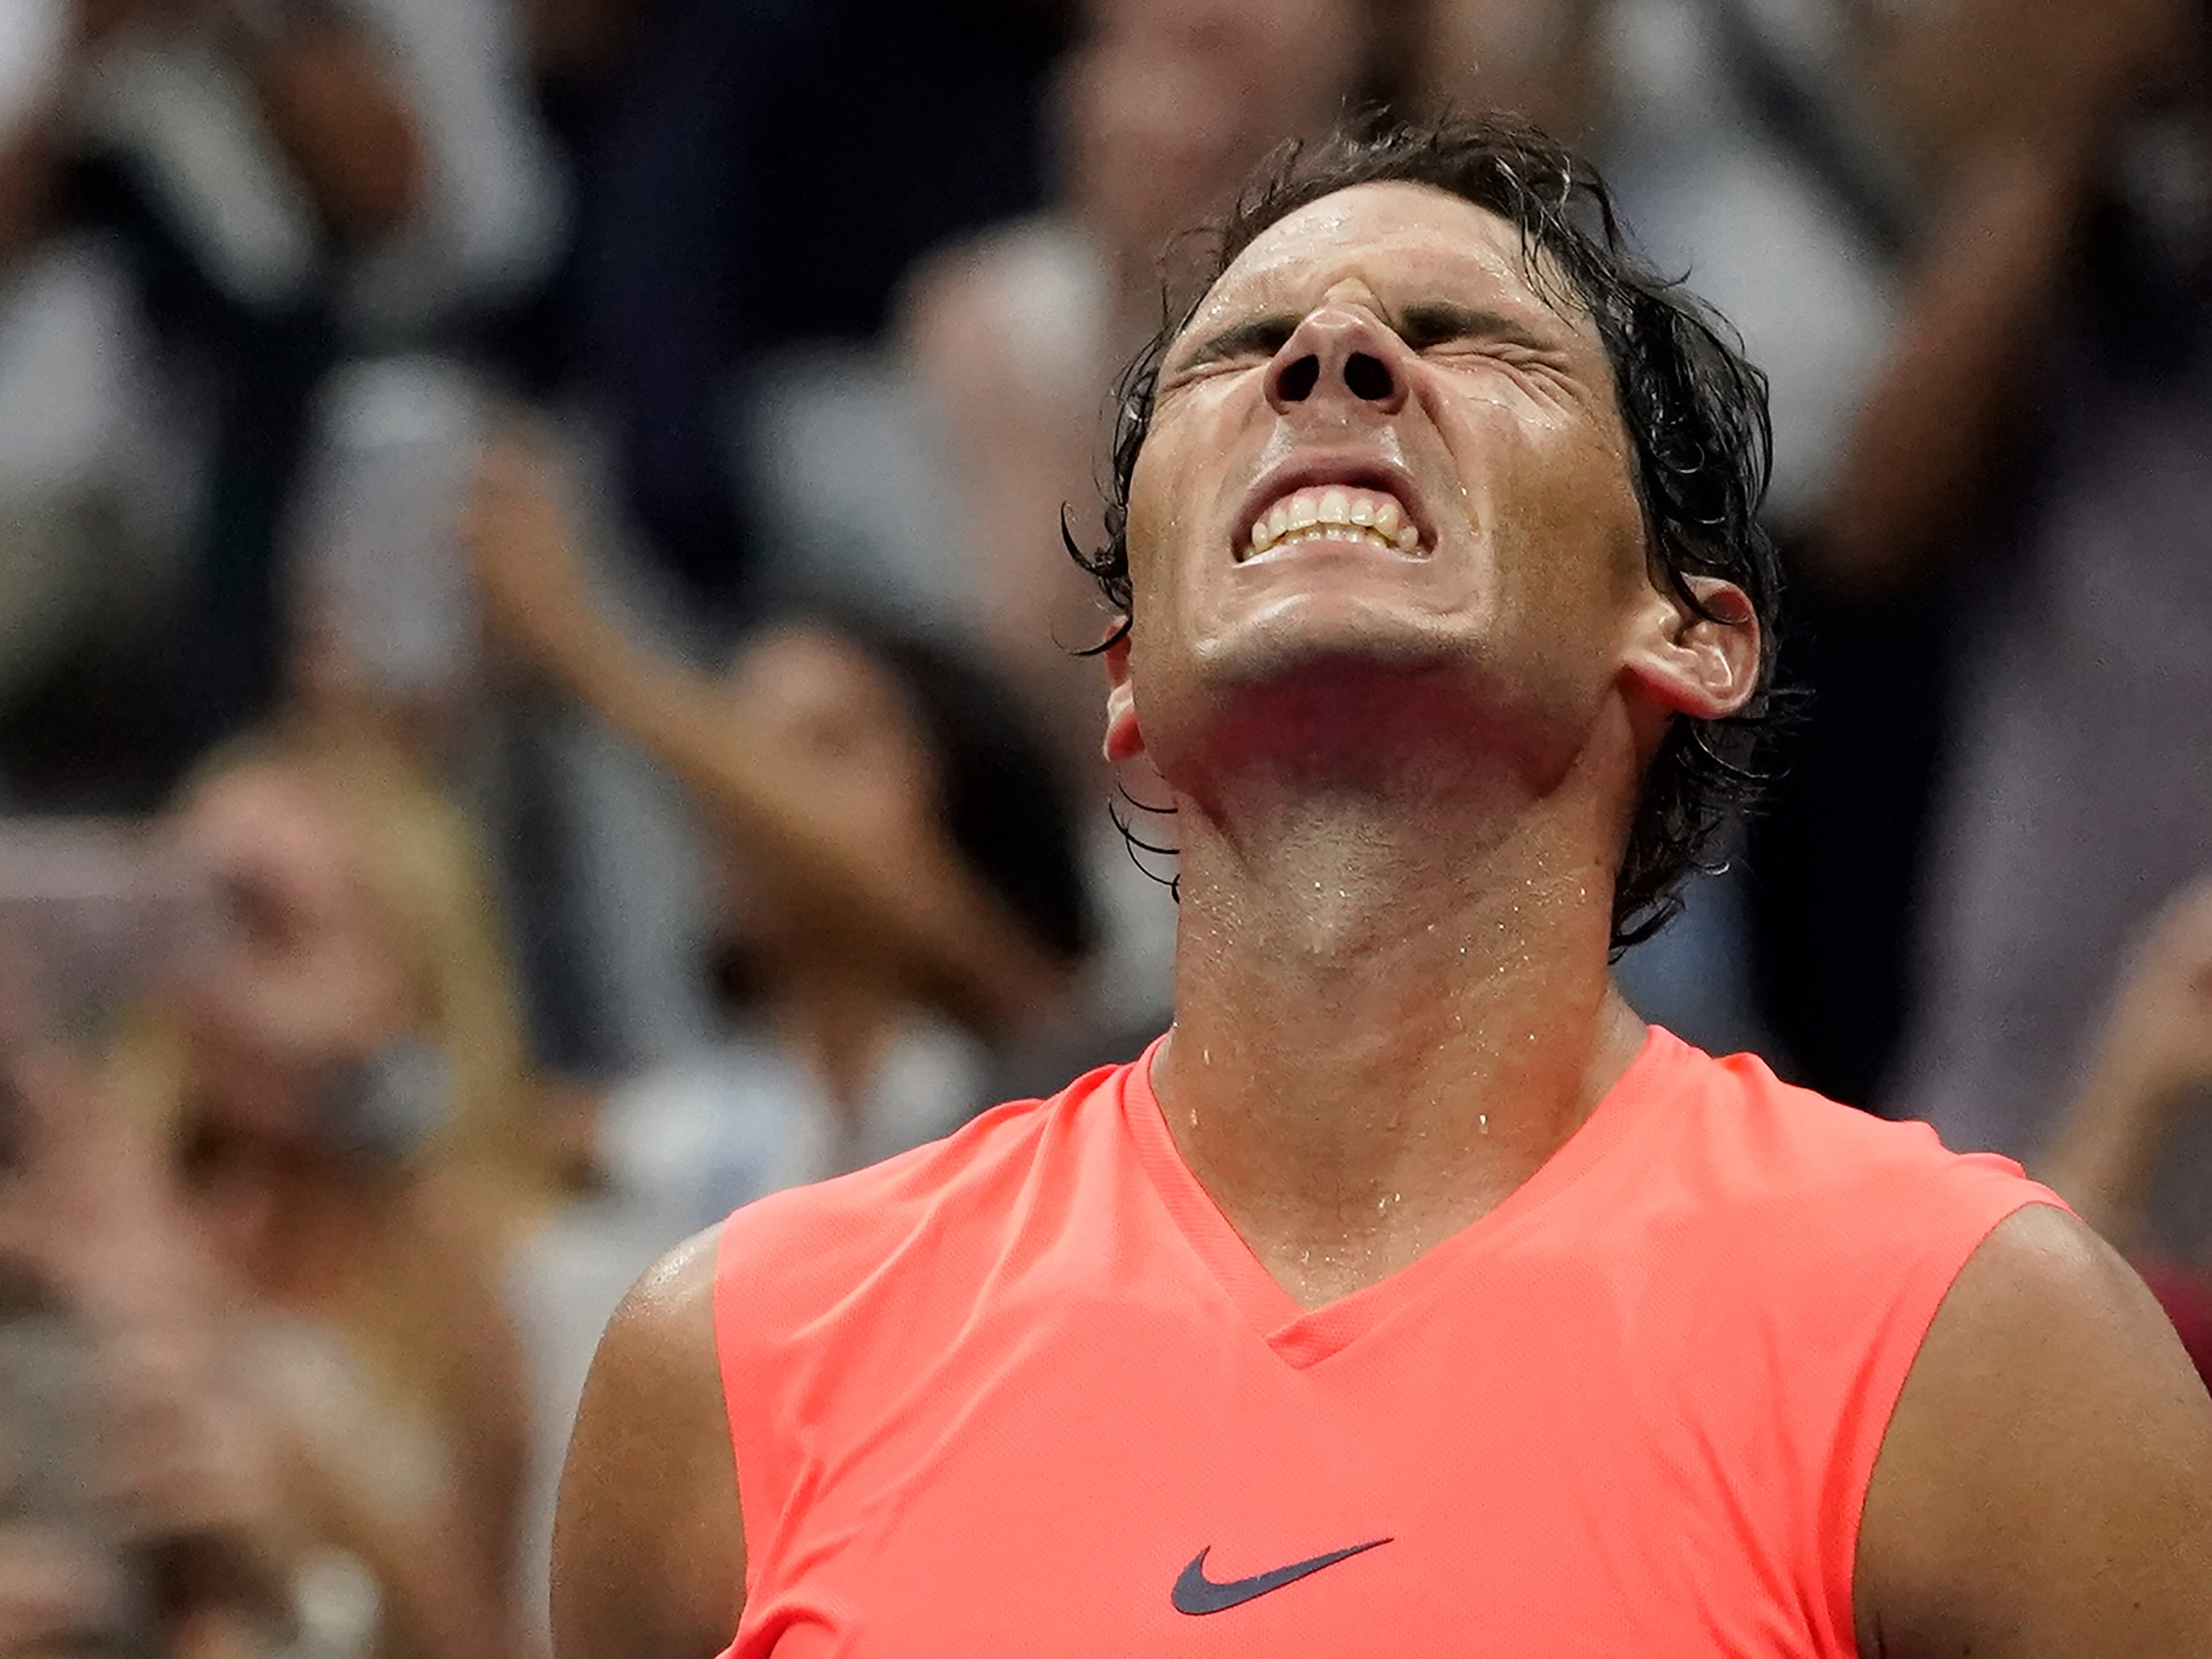 Rafael Nadal of Spain celebrates after beating Karen Khachanov of Russia in a third-round match.